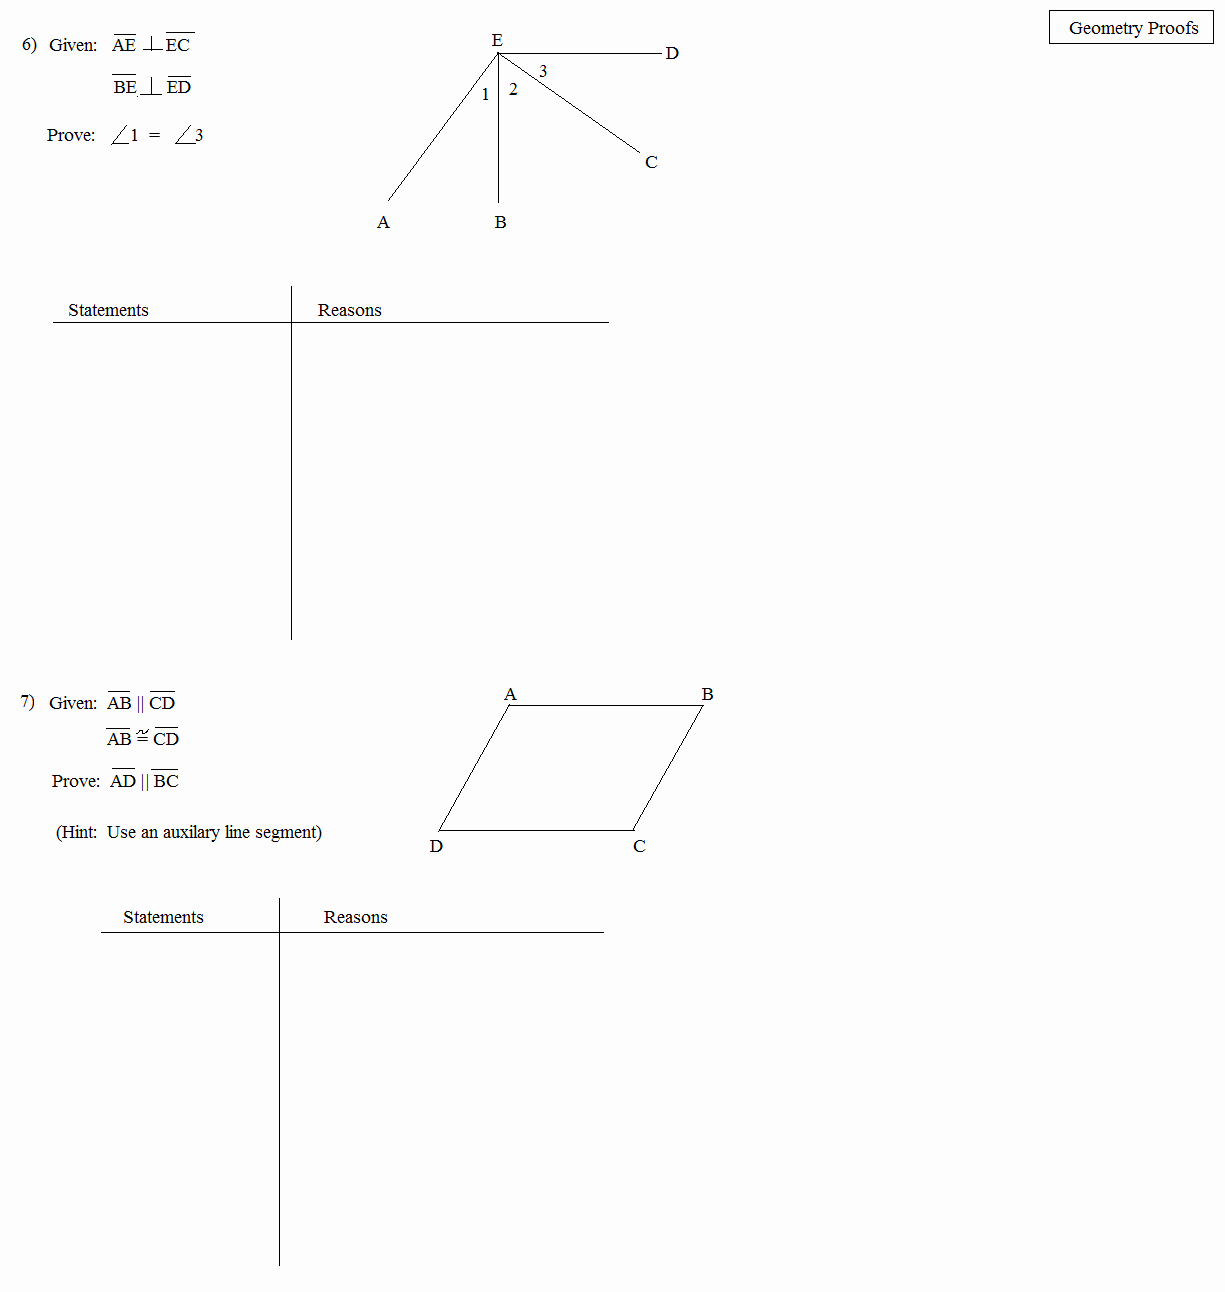 Geometric Proofs Worksheet with Answers Awesome Math Plane Proofs & Postulates 1 Worksheet